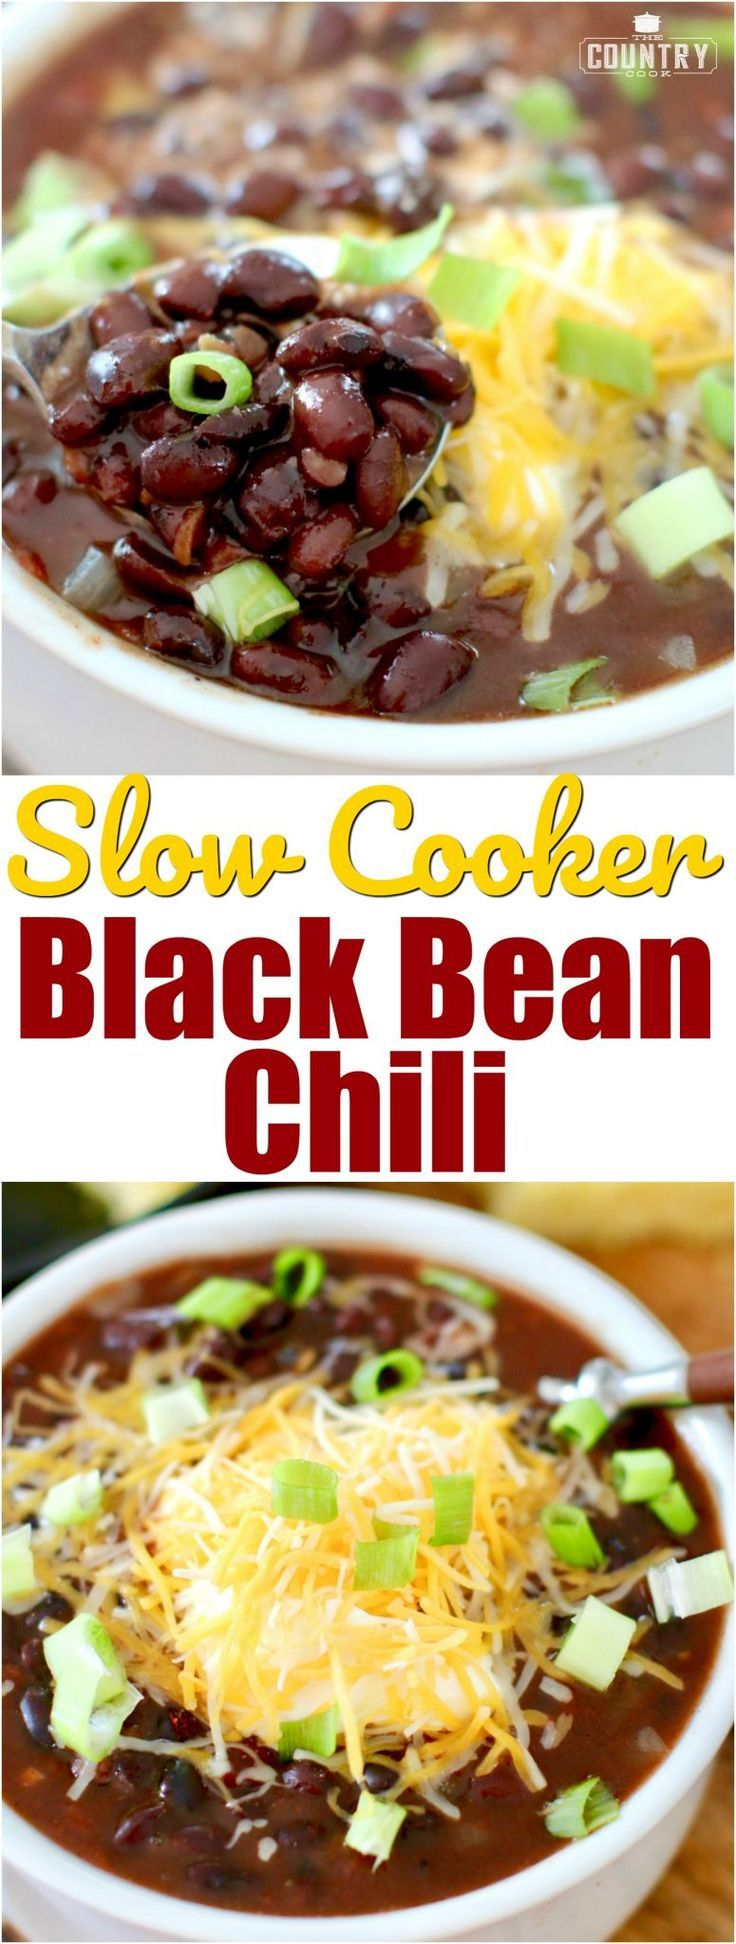 Crock Pot Black Bean Chili recipe from The Country Cook and BUSH'S Beans! #ad #slowcooker #crockpot #dinner #meatlessmondays